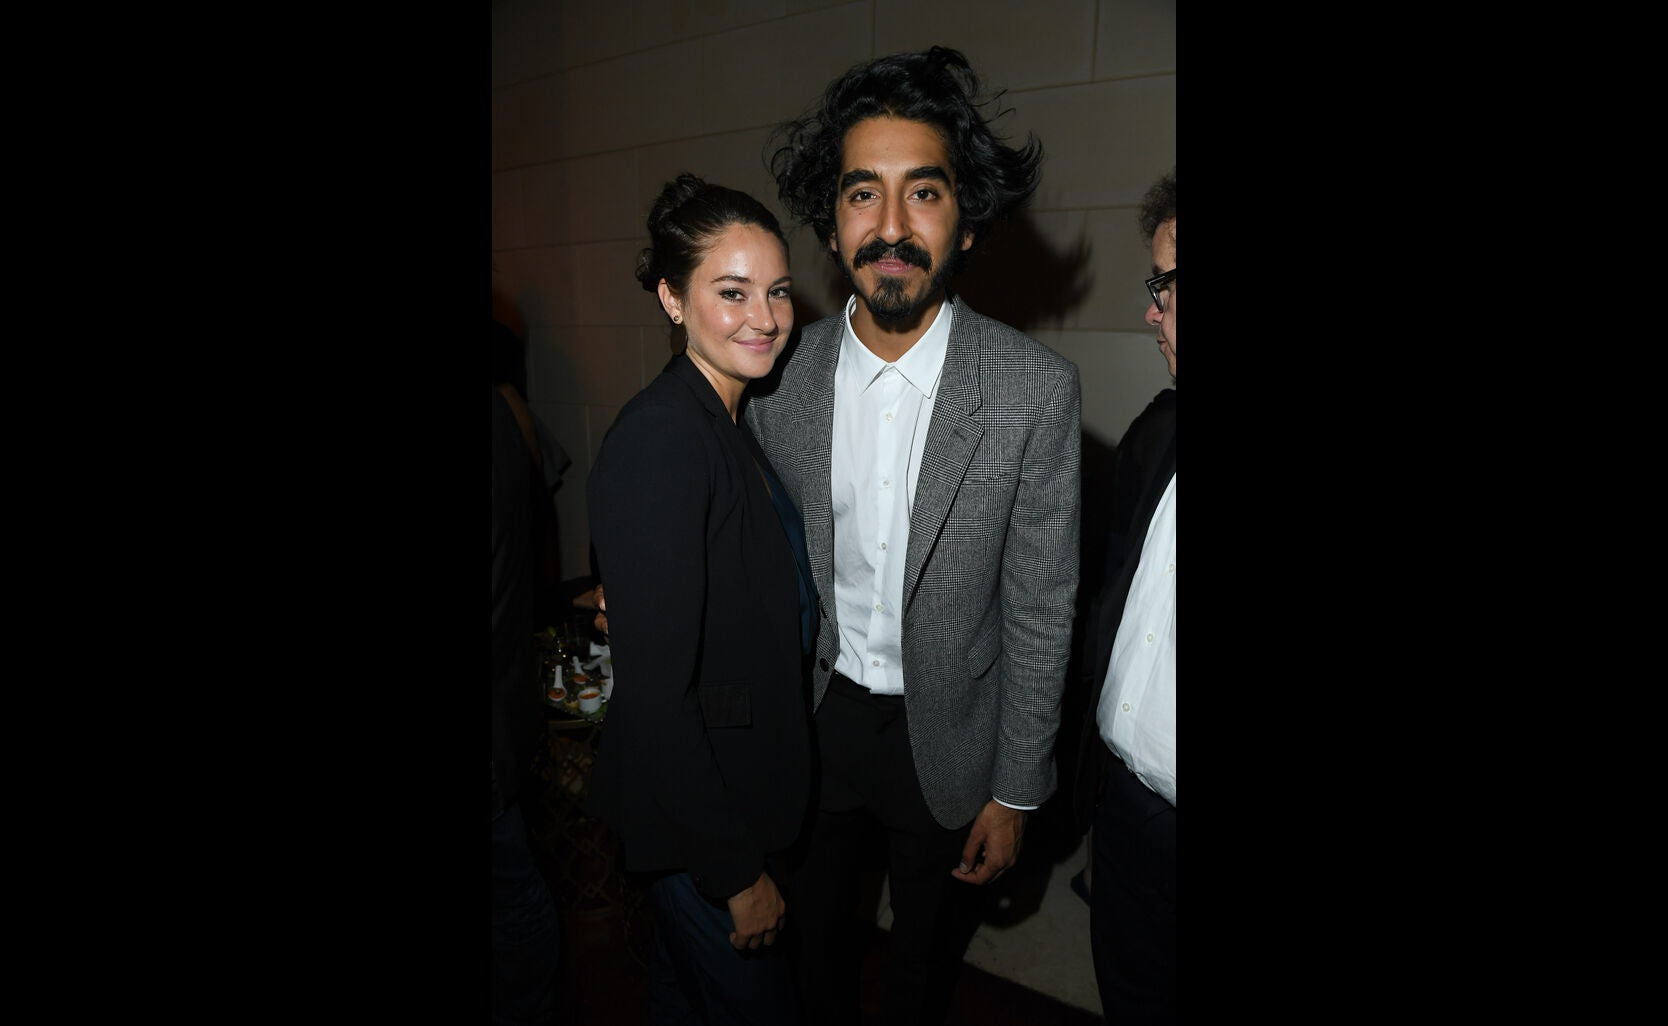 Golden Globe nominee Shailene Woodley and Dev Patel at the HFPA/InStyle party, Toronto 2016